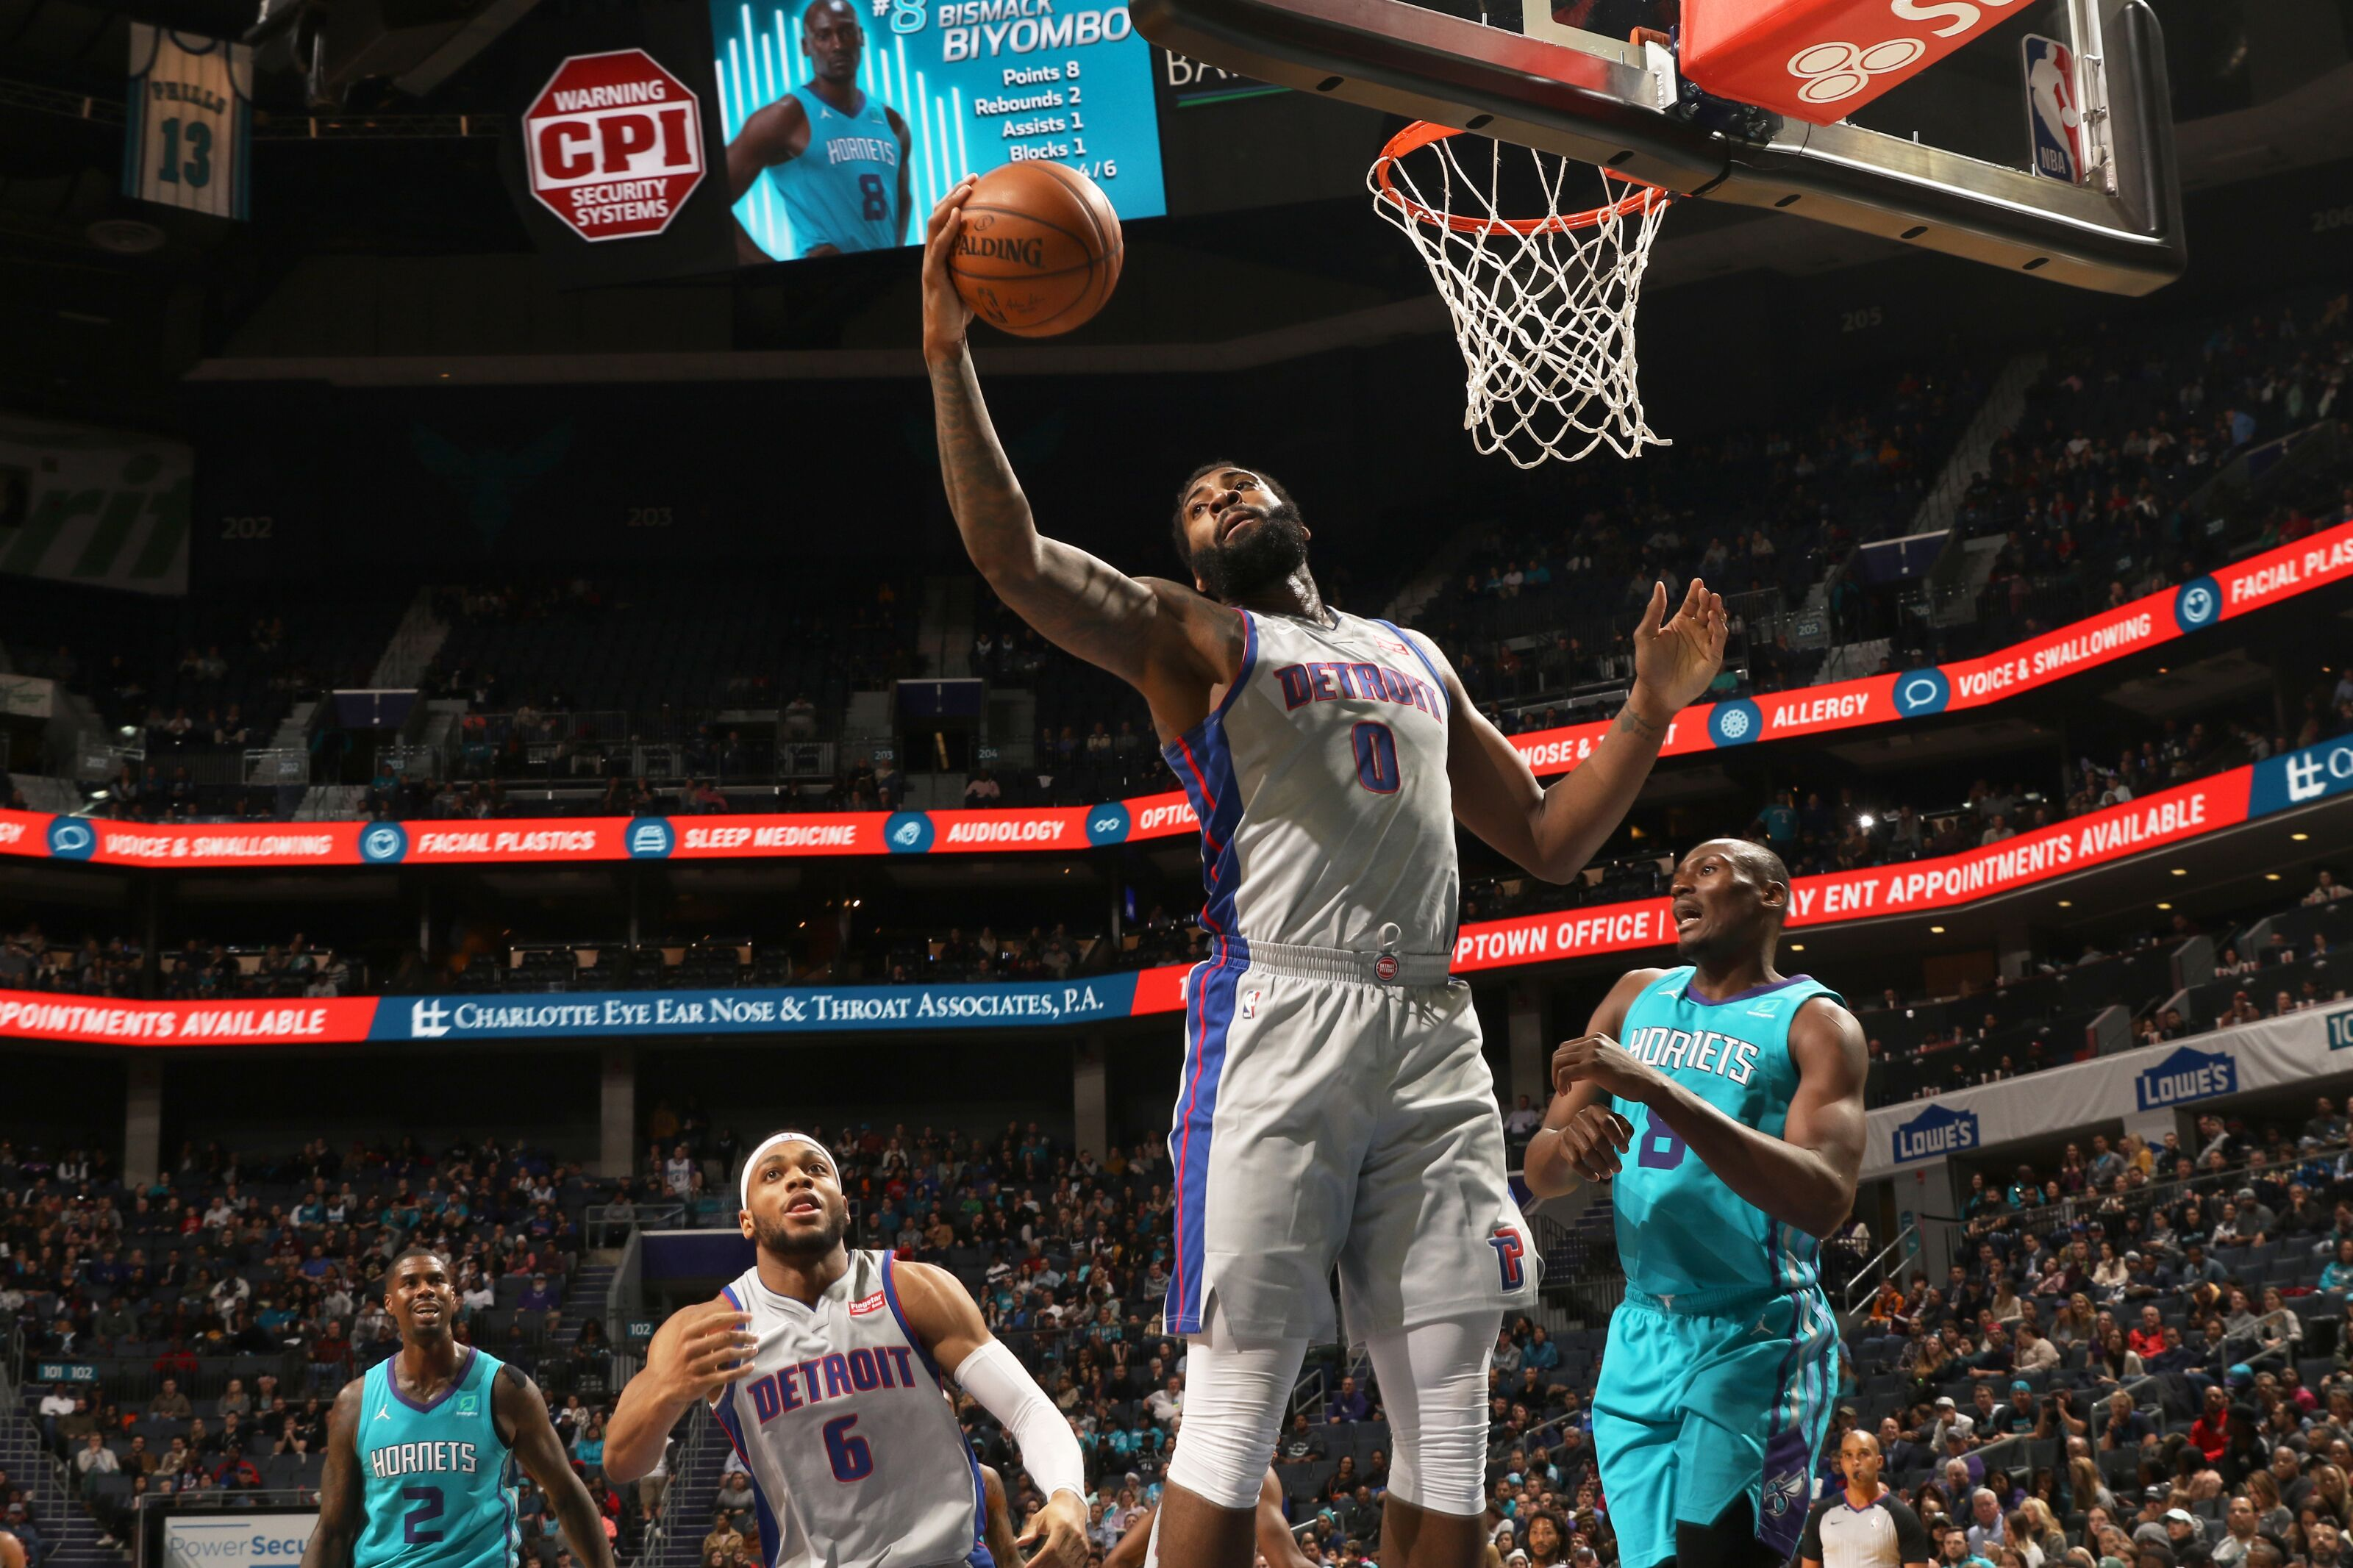 Charlotte Hornets Rumors: Long interest in Andre Drummond continues